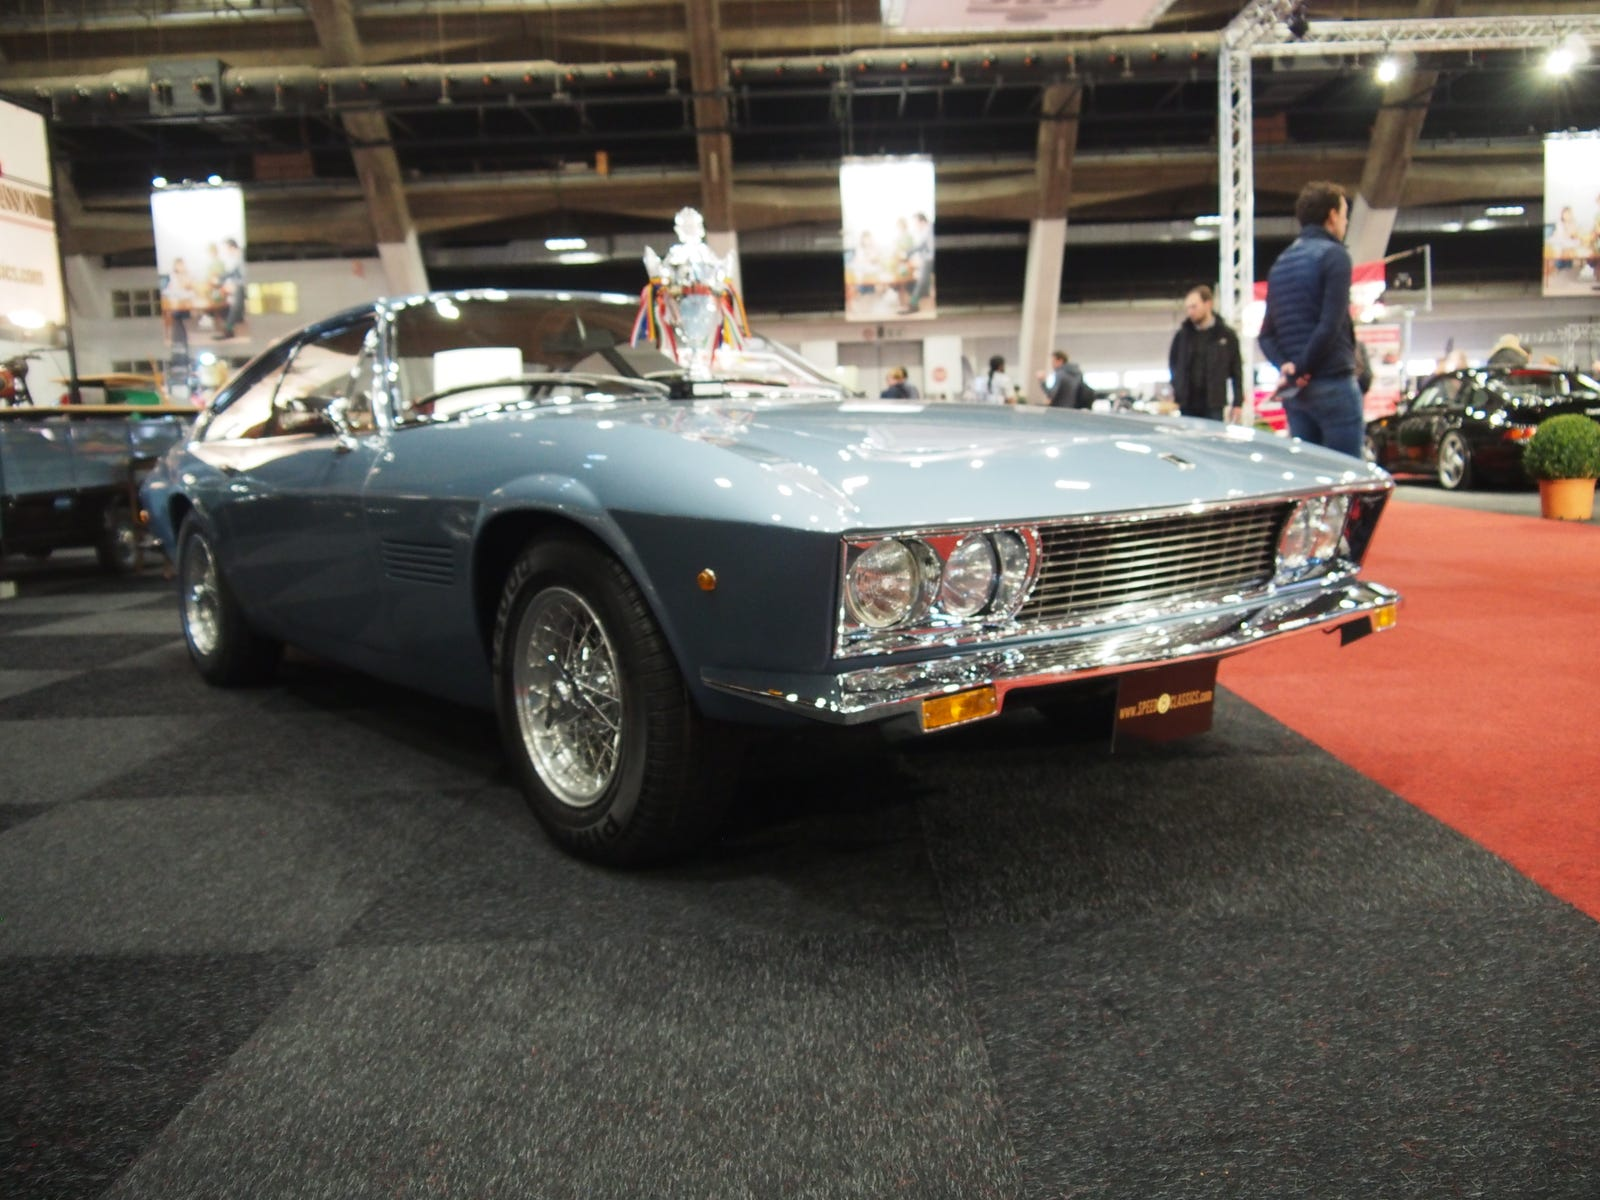 This 1970 Monteverdi 375L High Speed was a magnificent beast. So much so, my camera seemed unable to focus on it. Powered by a 7.2 liter V8, so I believe the high speed part.